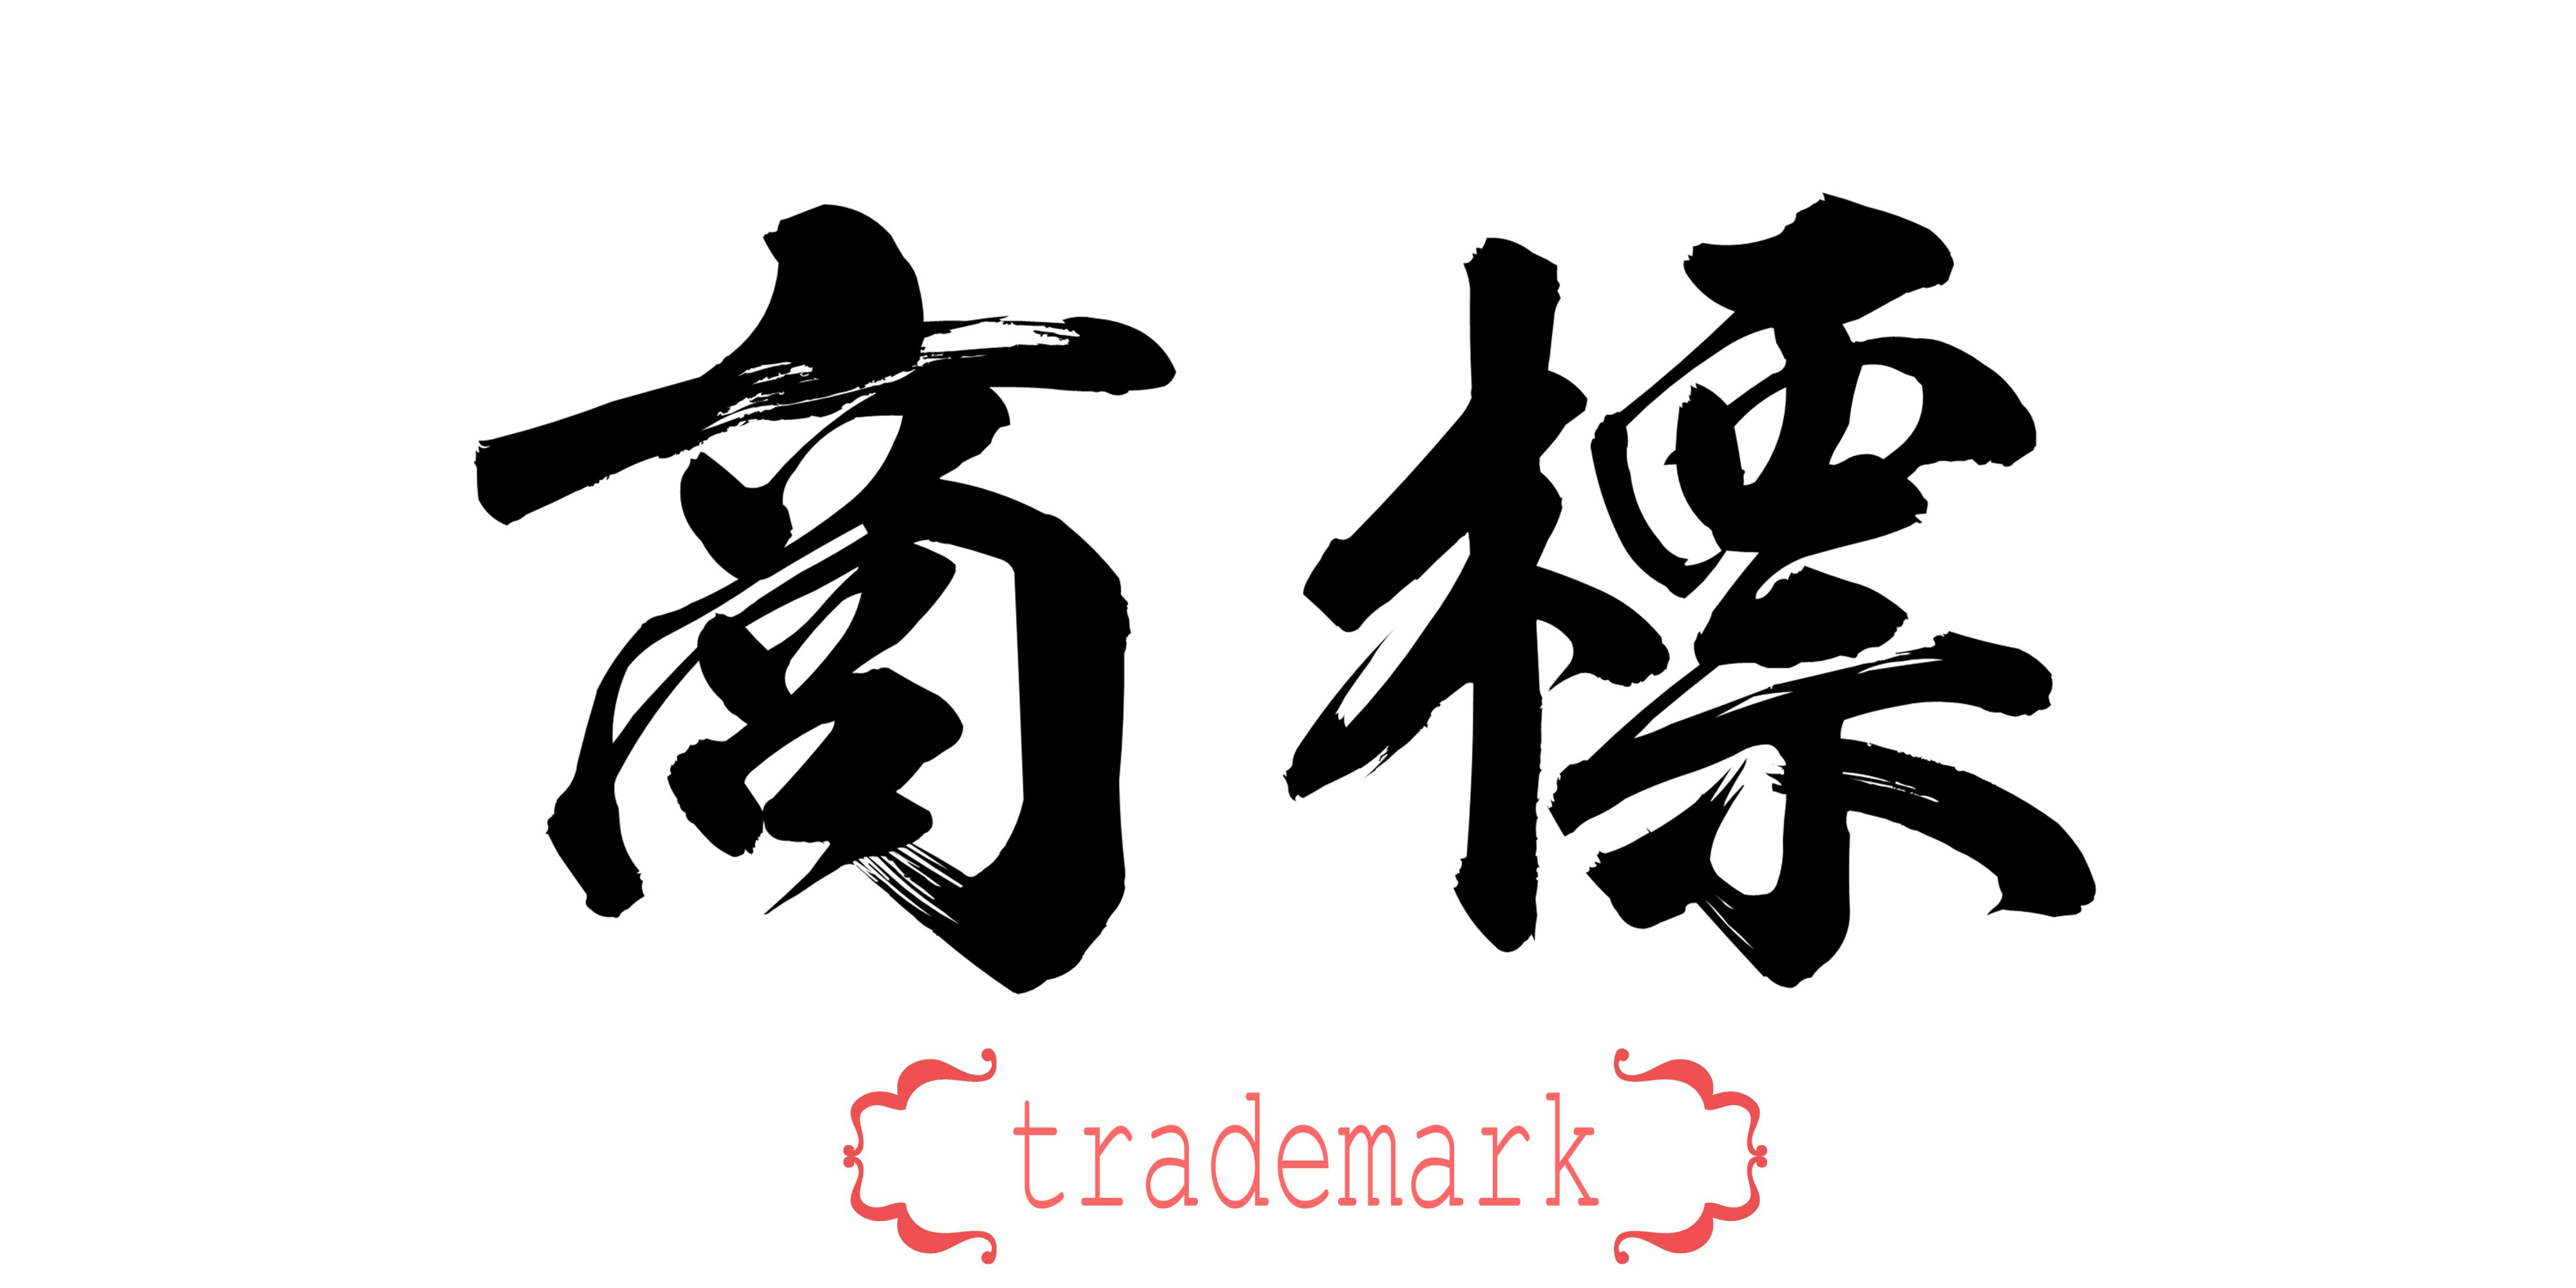 Trademark in Chinese